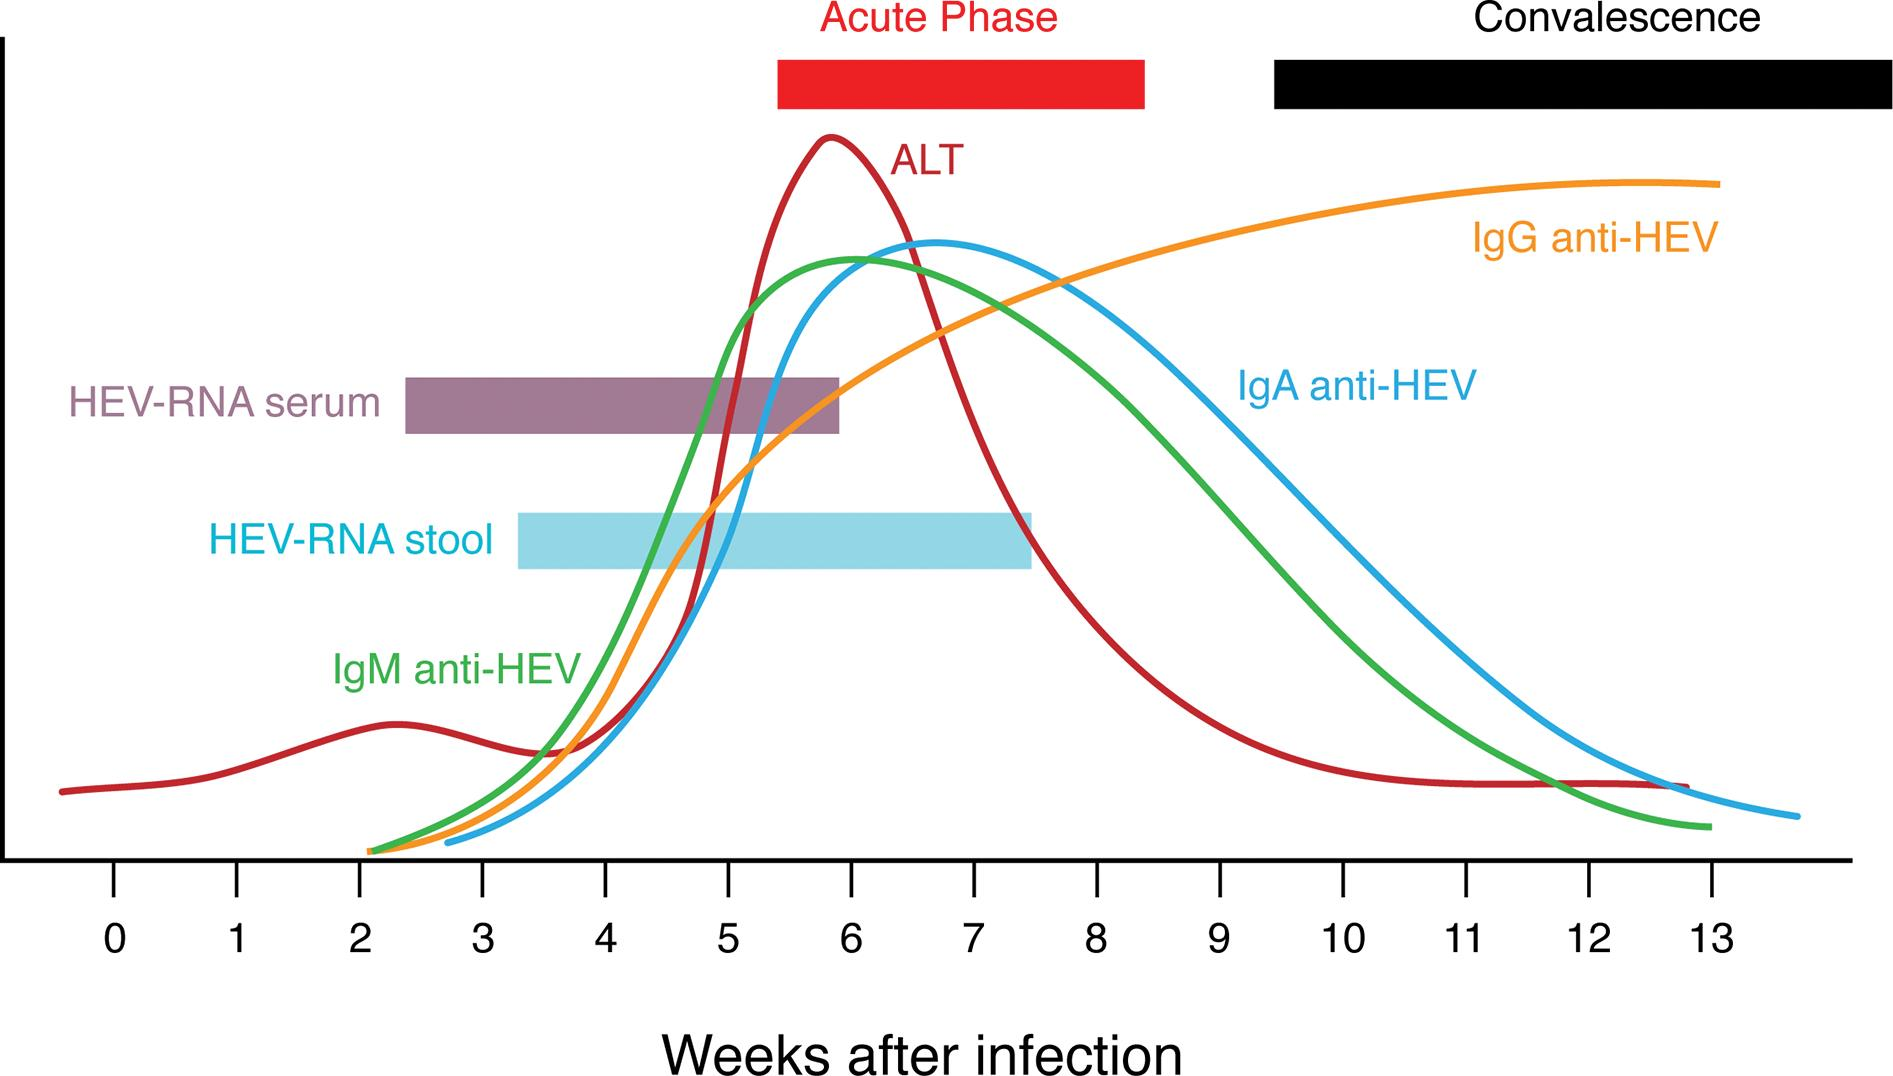 Schematic summary of main pathogenetic events (virology, serology, disease) during acute HEV infection.